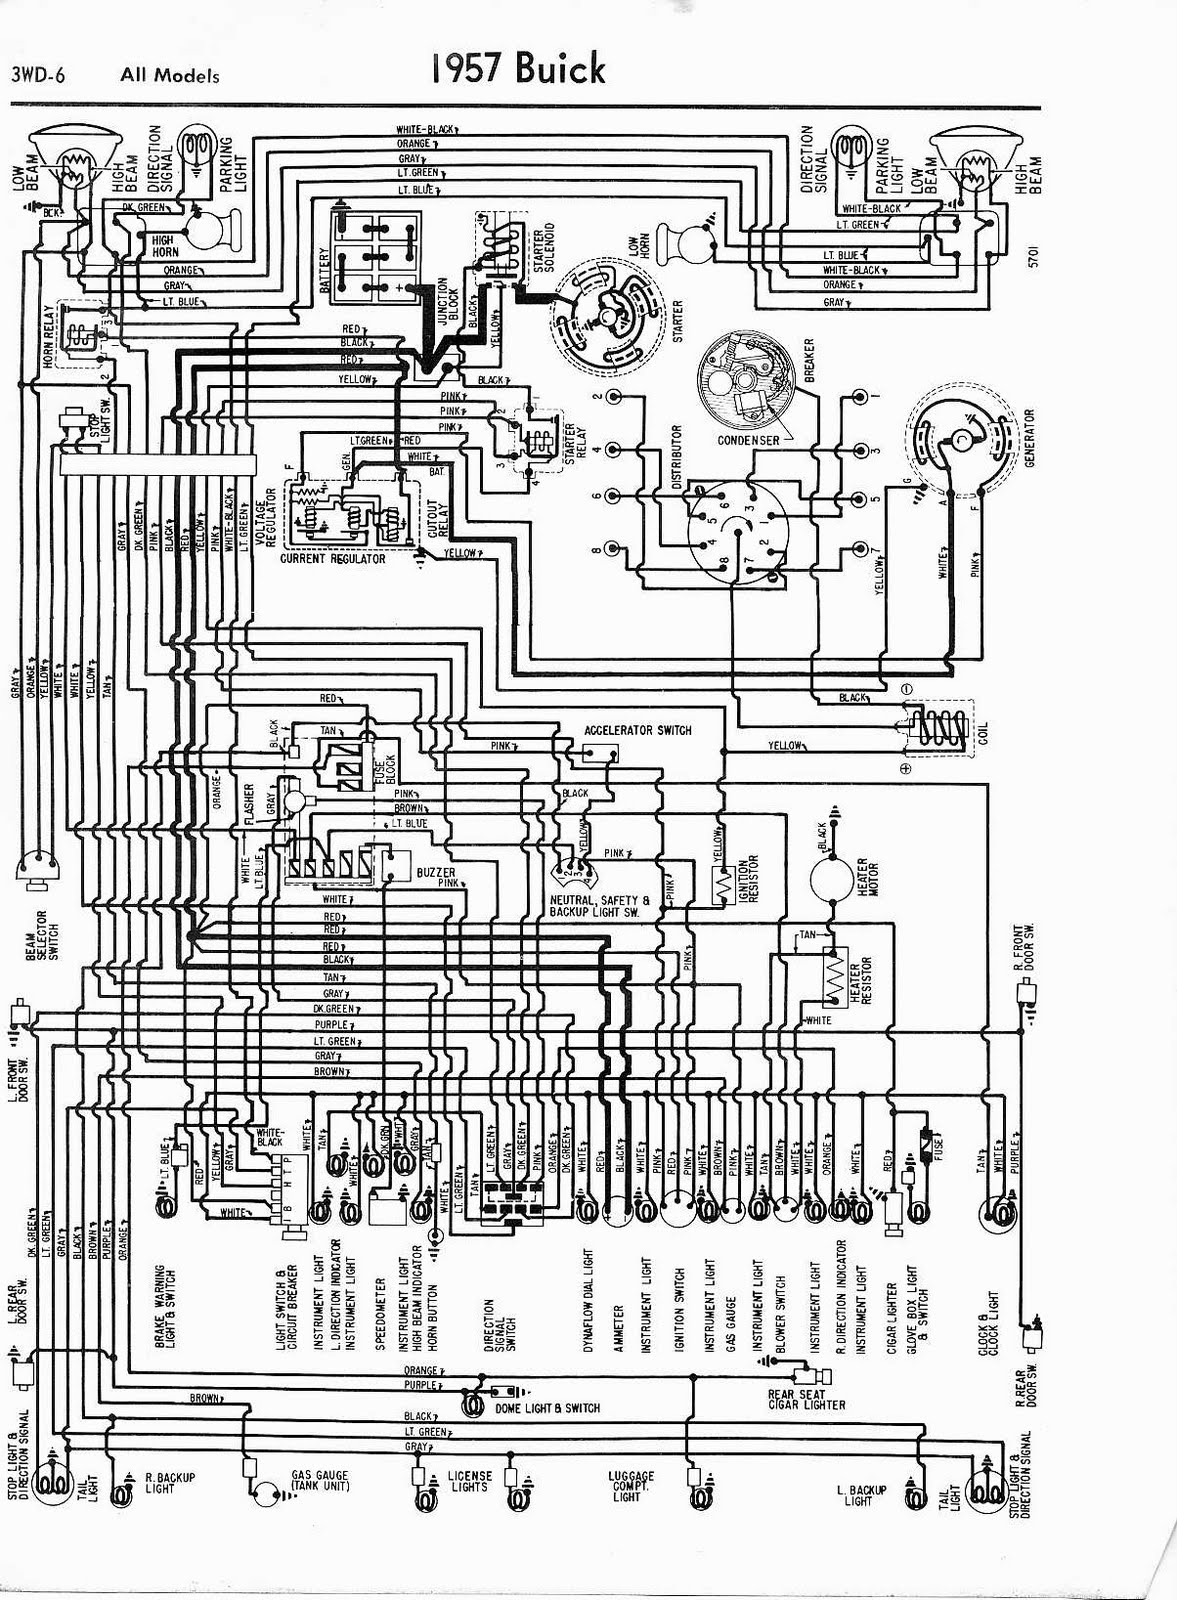 1956 Chevy Fuel Gauge Wiring Diagram Together With 1957 Chevy Fuse